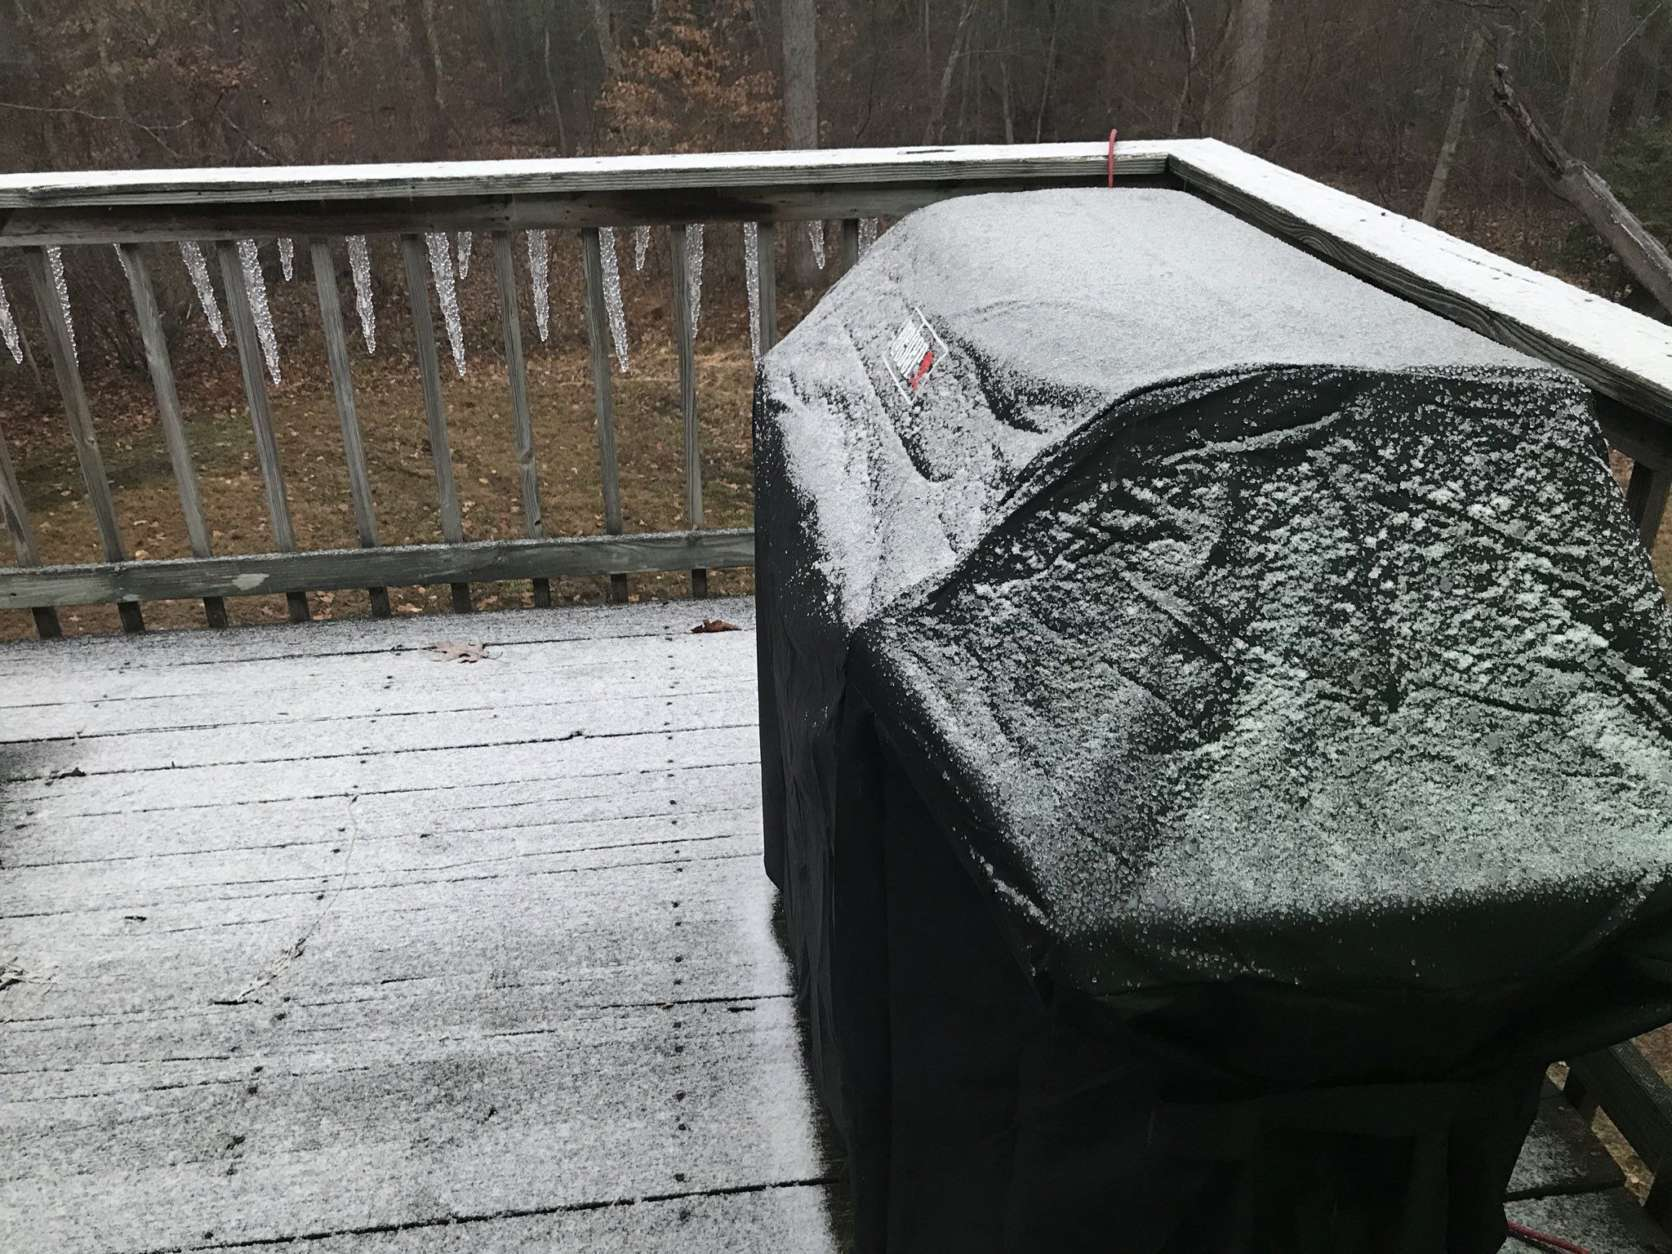 Snow falls Saturday morning in Calvert County, Maryland. (WTOP/Michelle Basch)